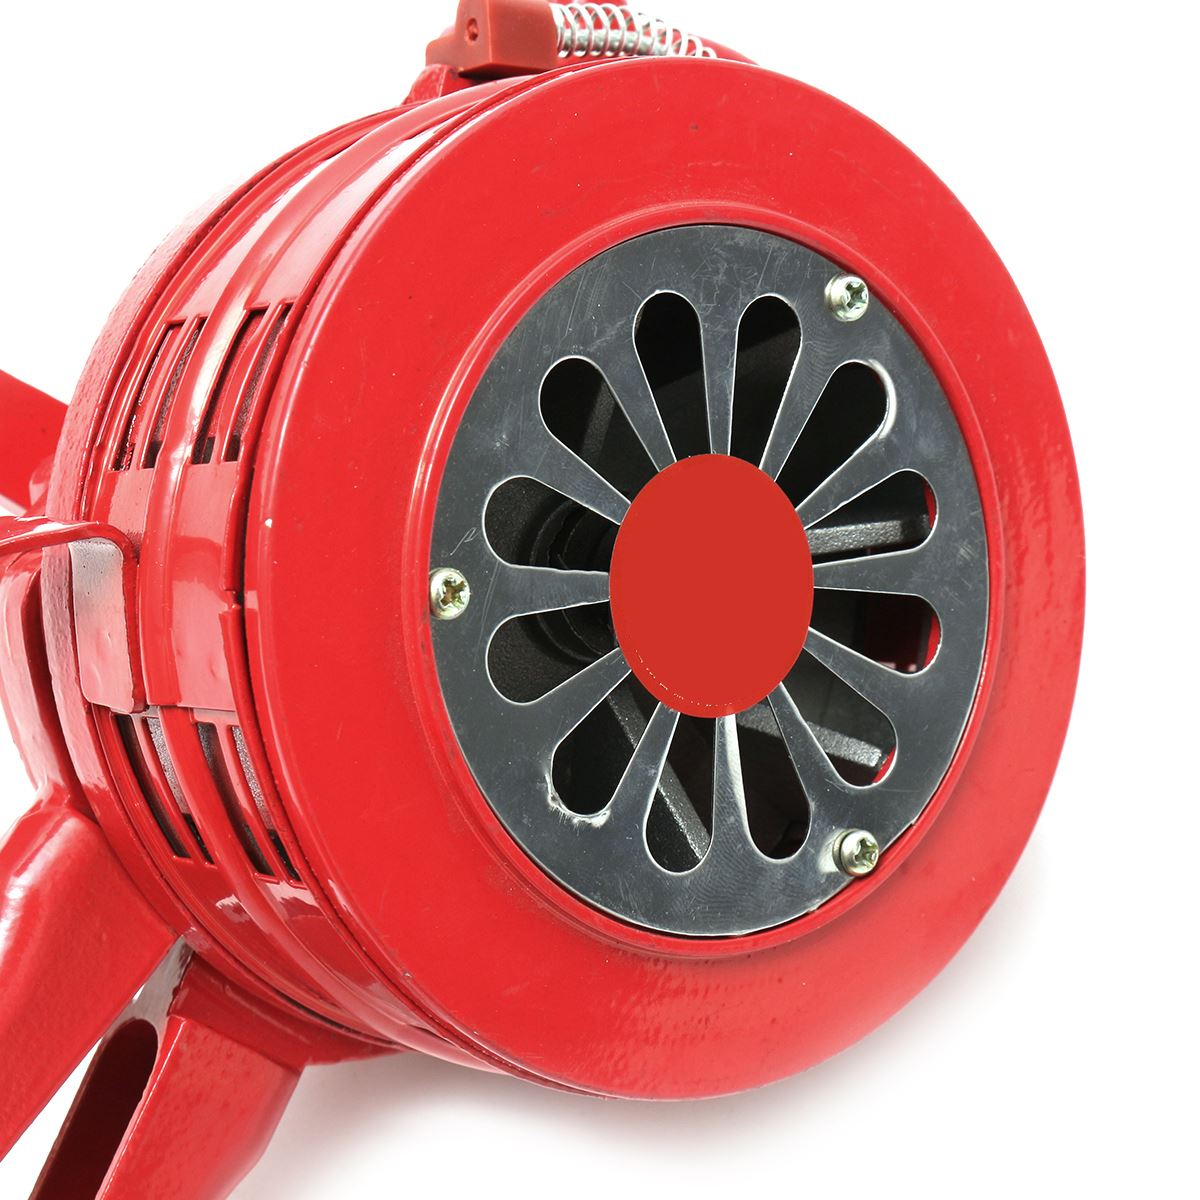 FGHGF 4.5 Red Aluminium Alloy Handheld Manual Operated Security Alarm Air Raid Siren Portable Safety Alarm Siren Red personal guard safety security siren alarm with led flashlight white 2 cr2032